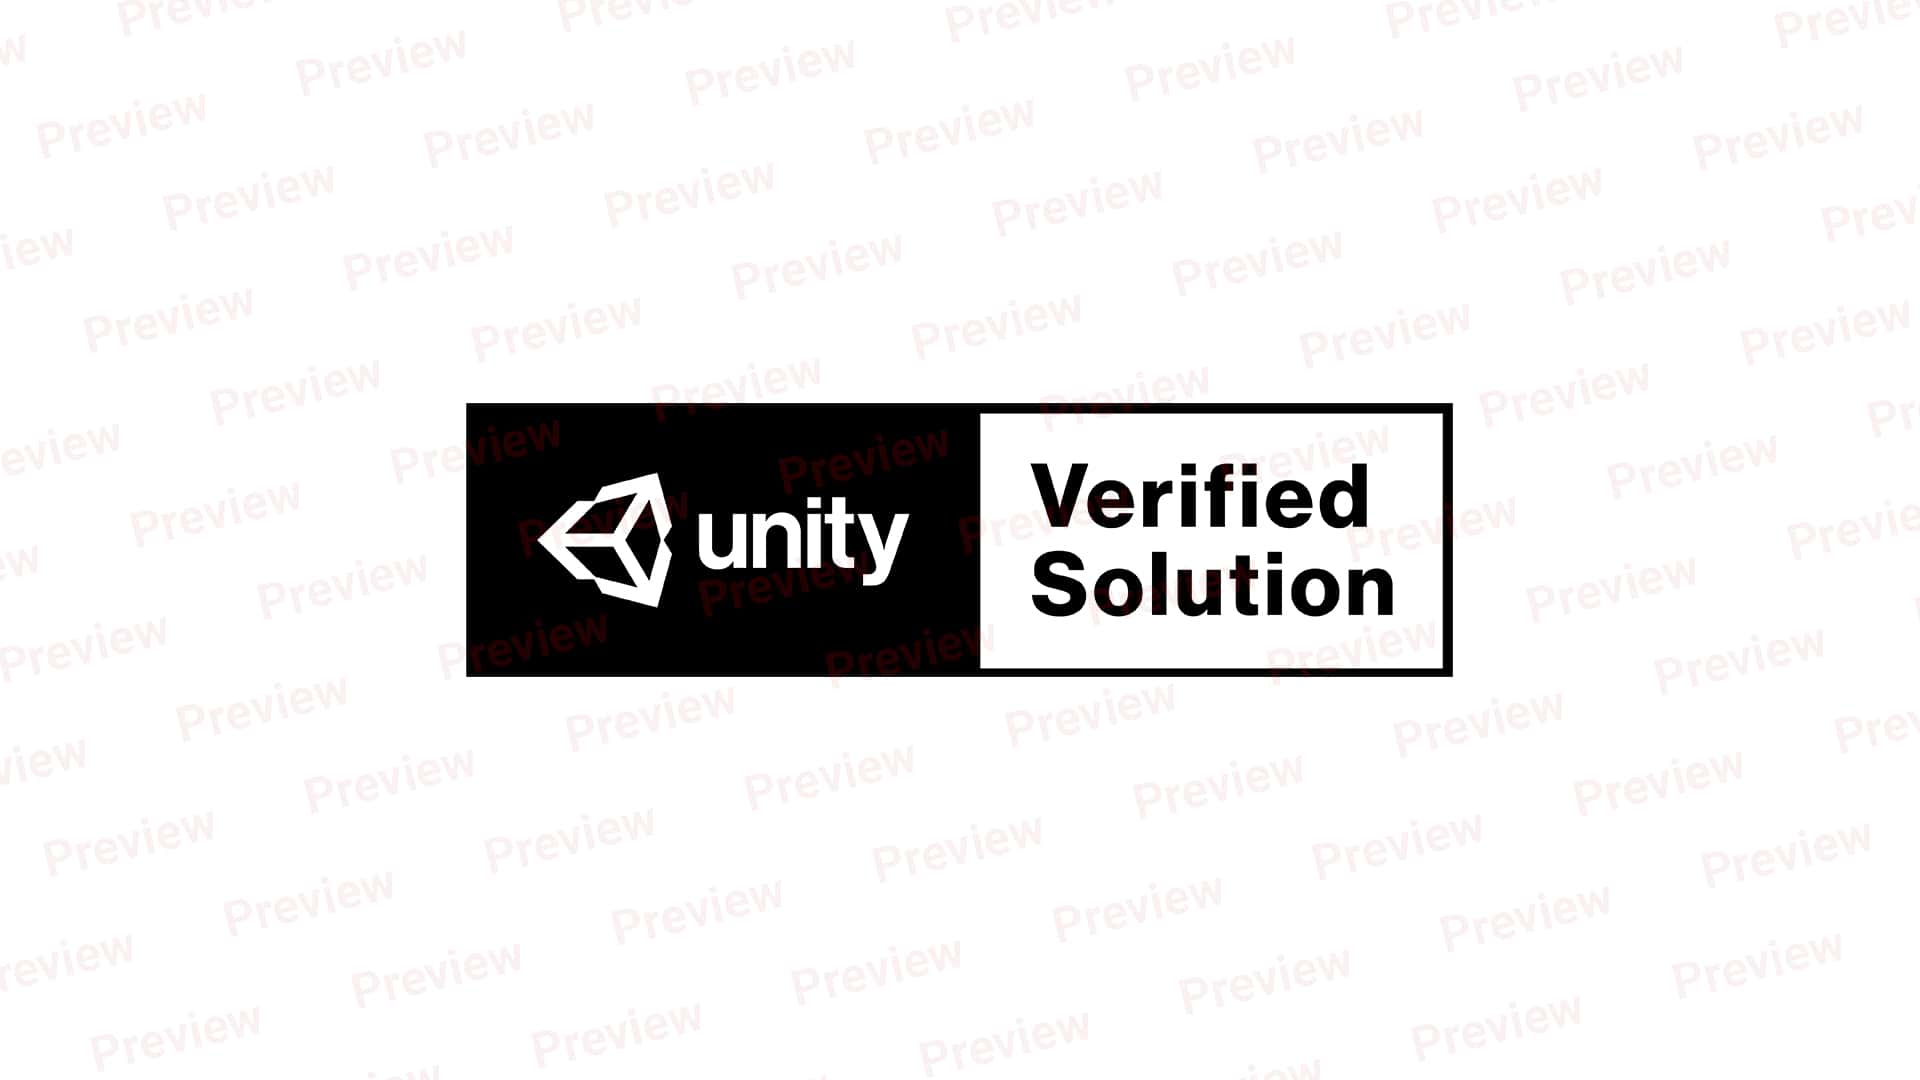 Verified Solution